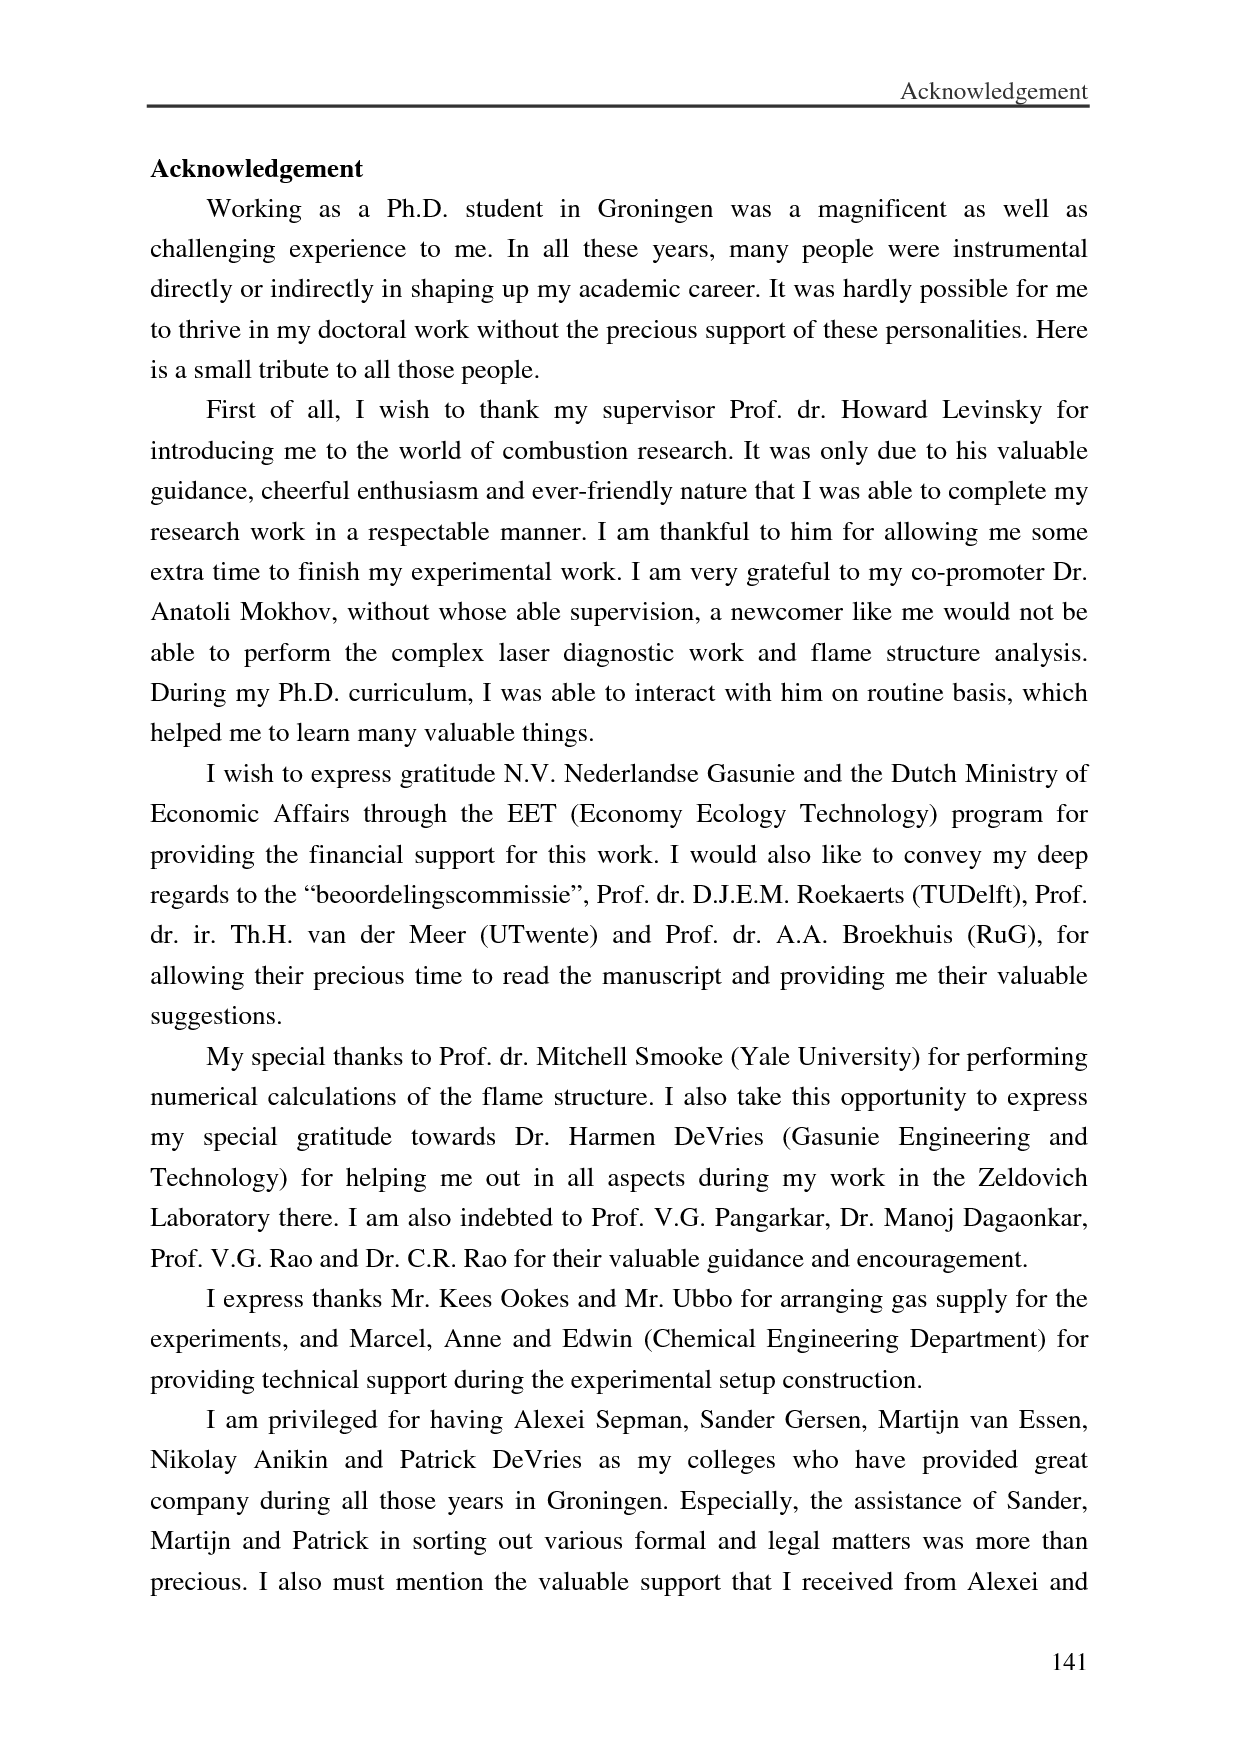 Acknowledgements Dissertation